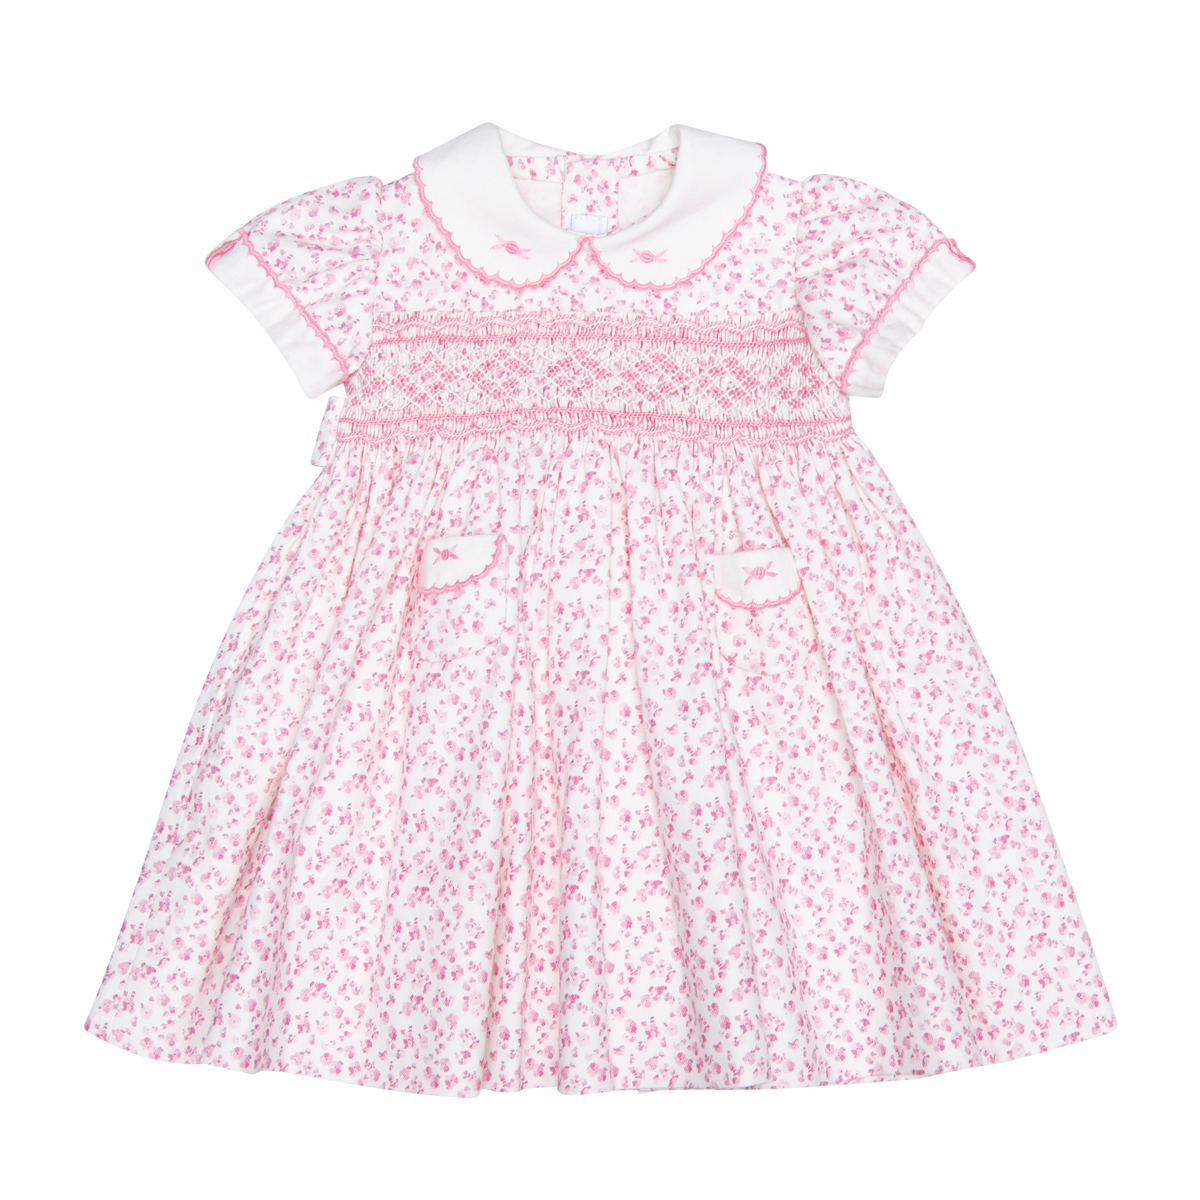 Friki Cuello Y Tapilla Dress with pockets in Pink Floral